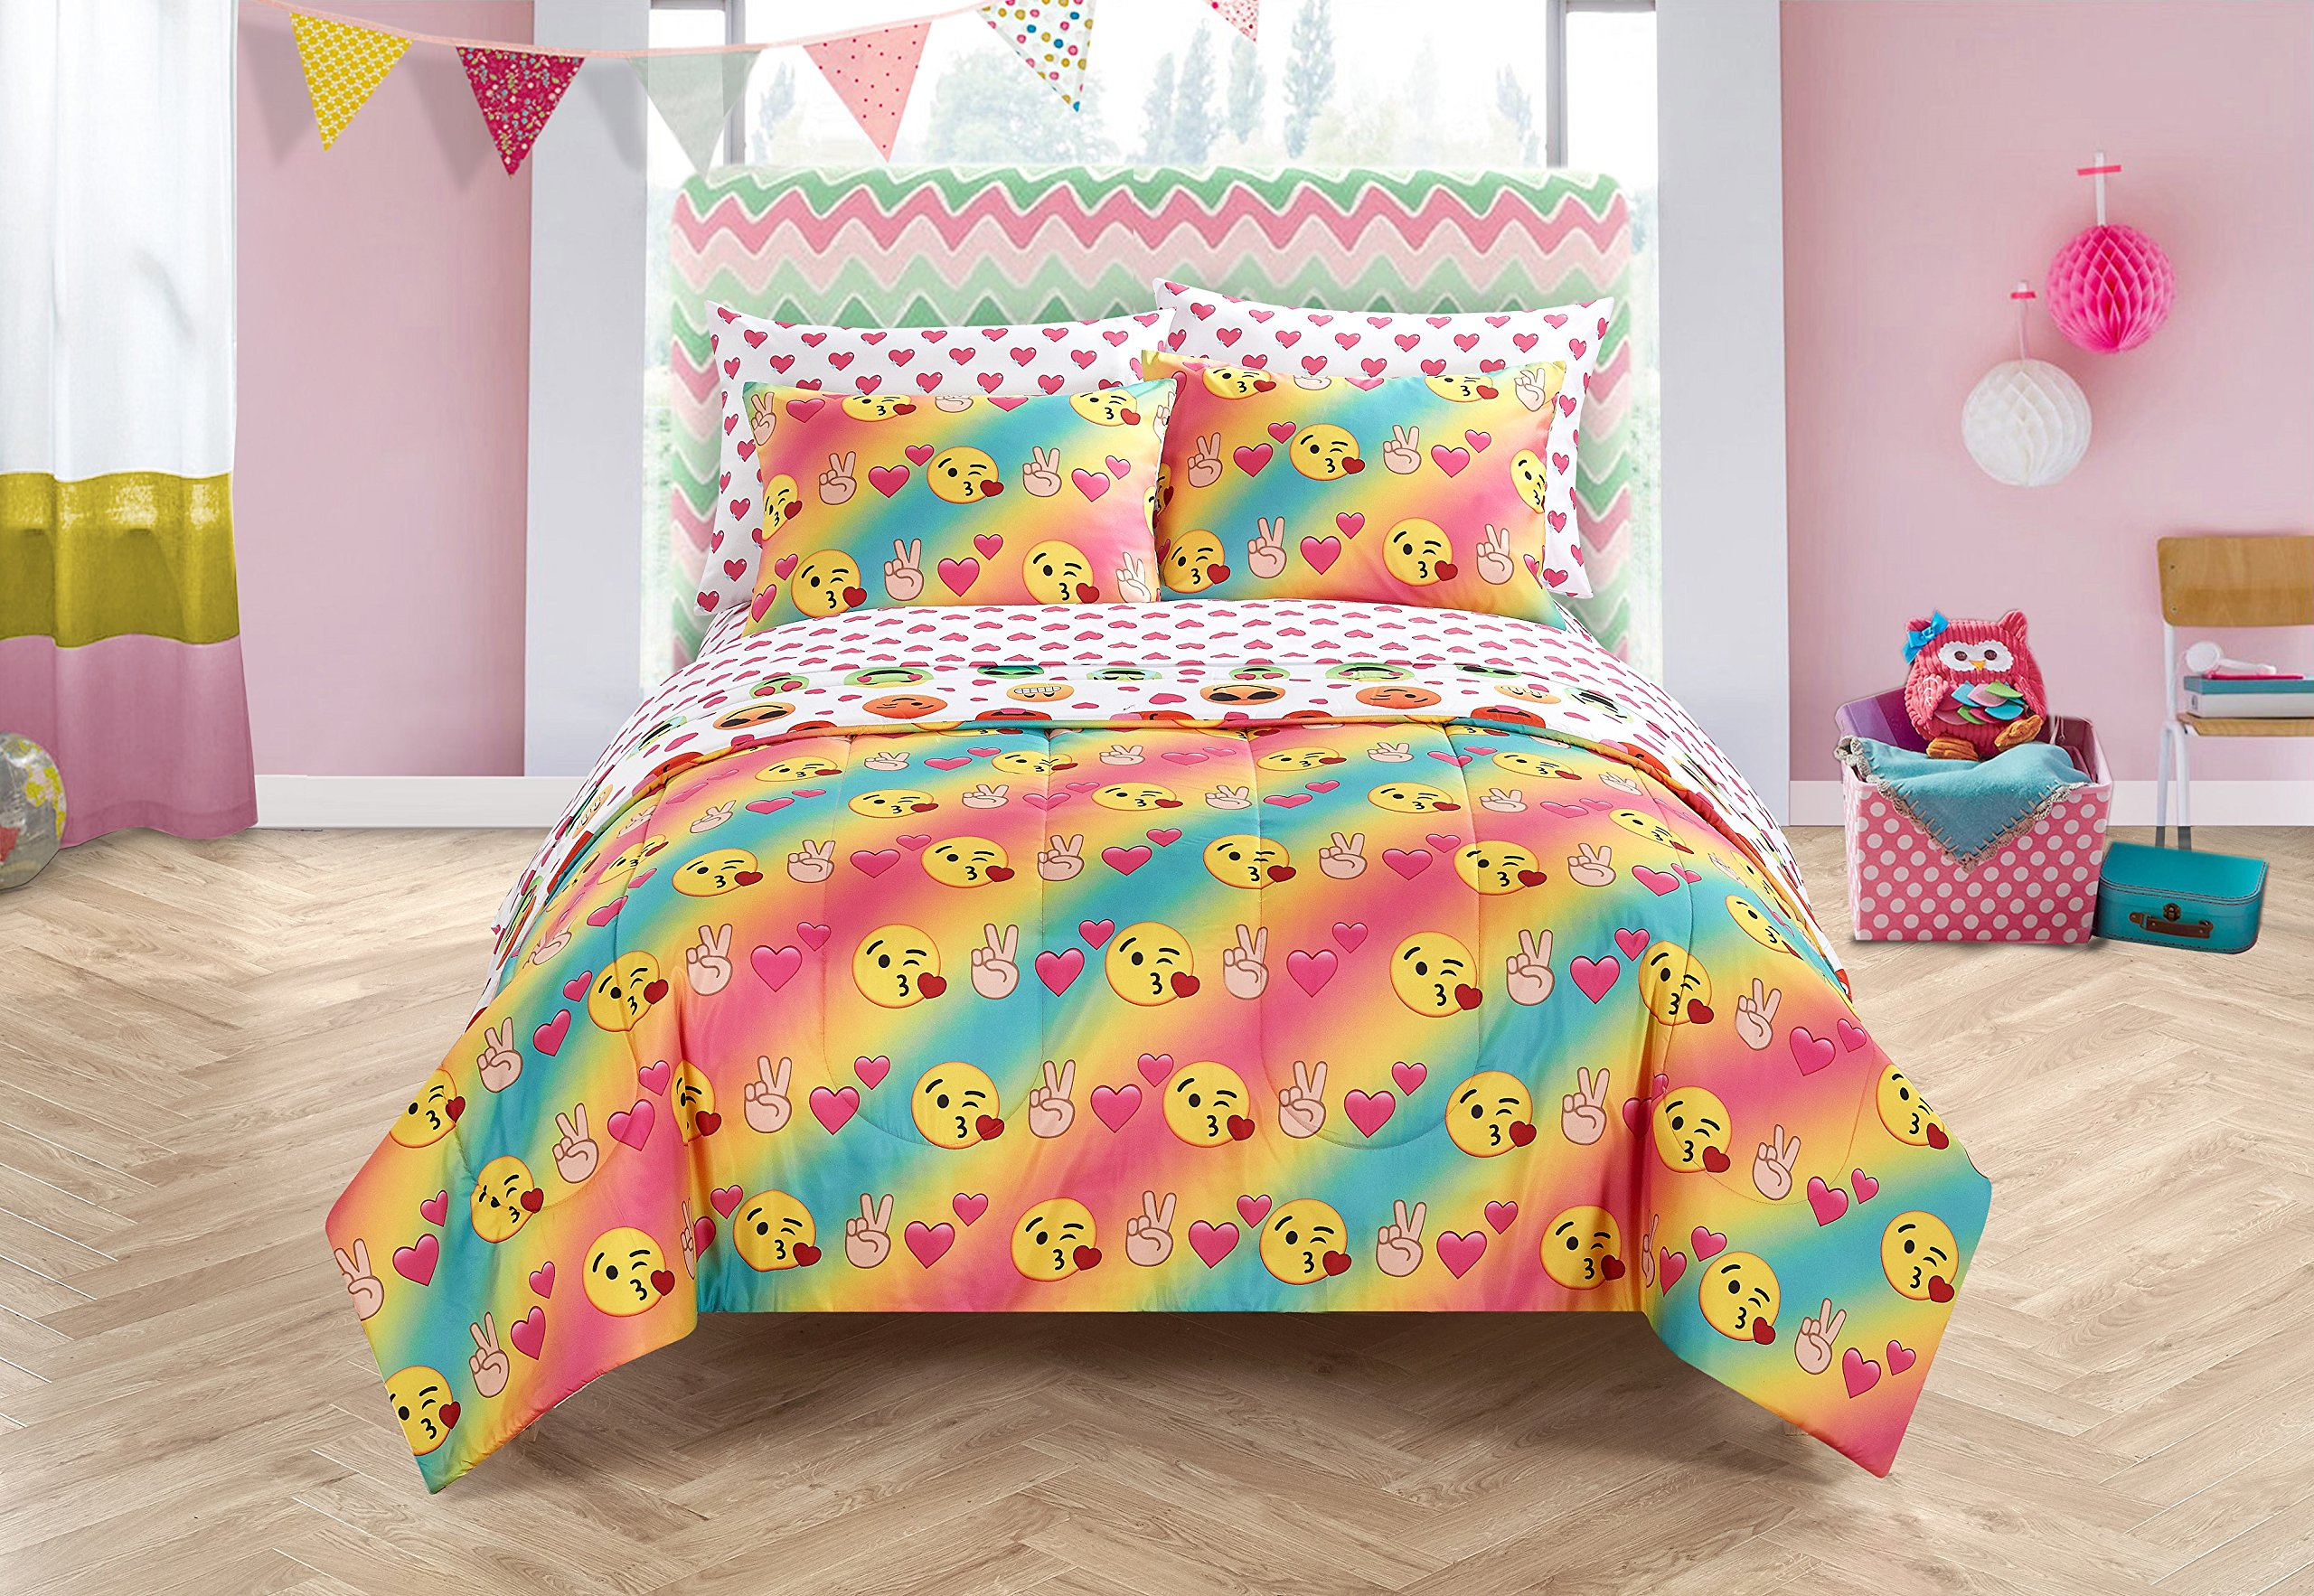 Emoji Pals Love Bed in A Bag Reversible Comforter Set,Tie Dye,Twin/XL